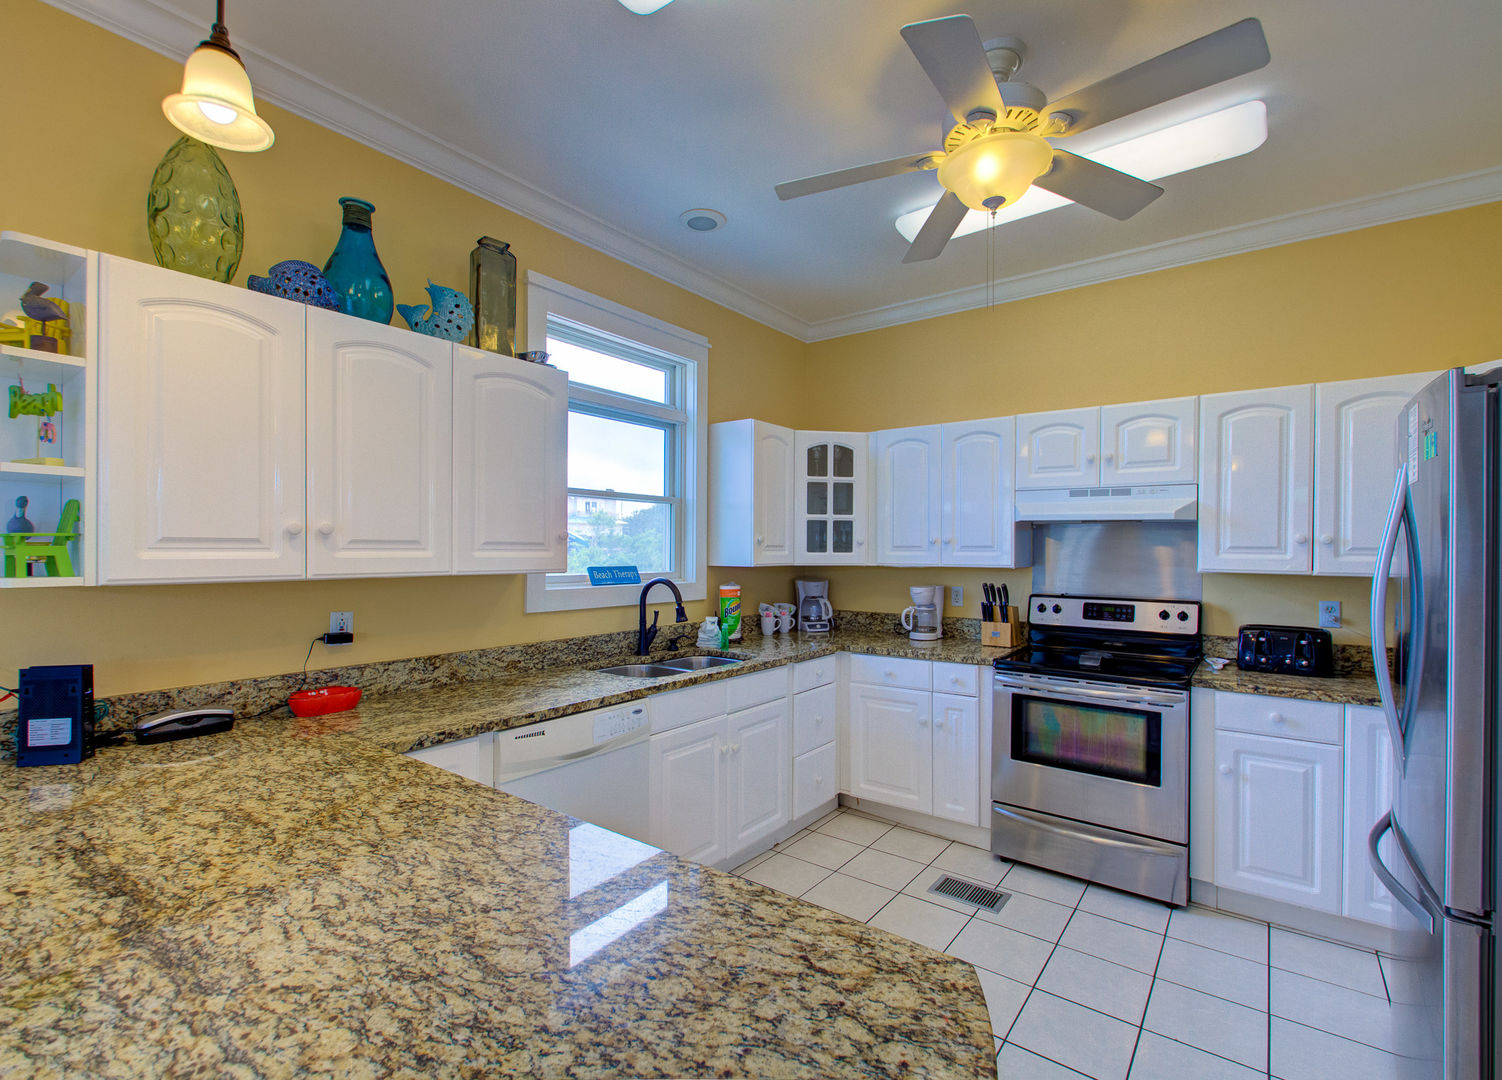 Kitchen with Coffee Makers, Refrigerator, and Ceiling Fan.